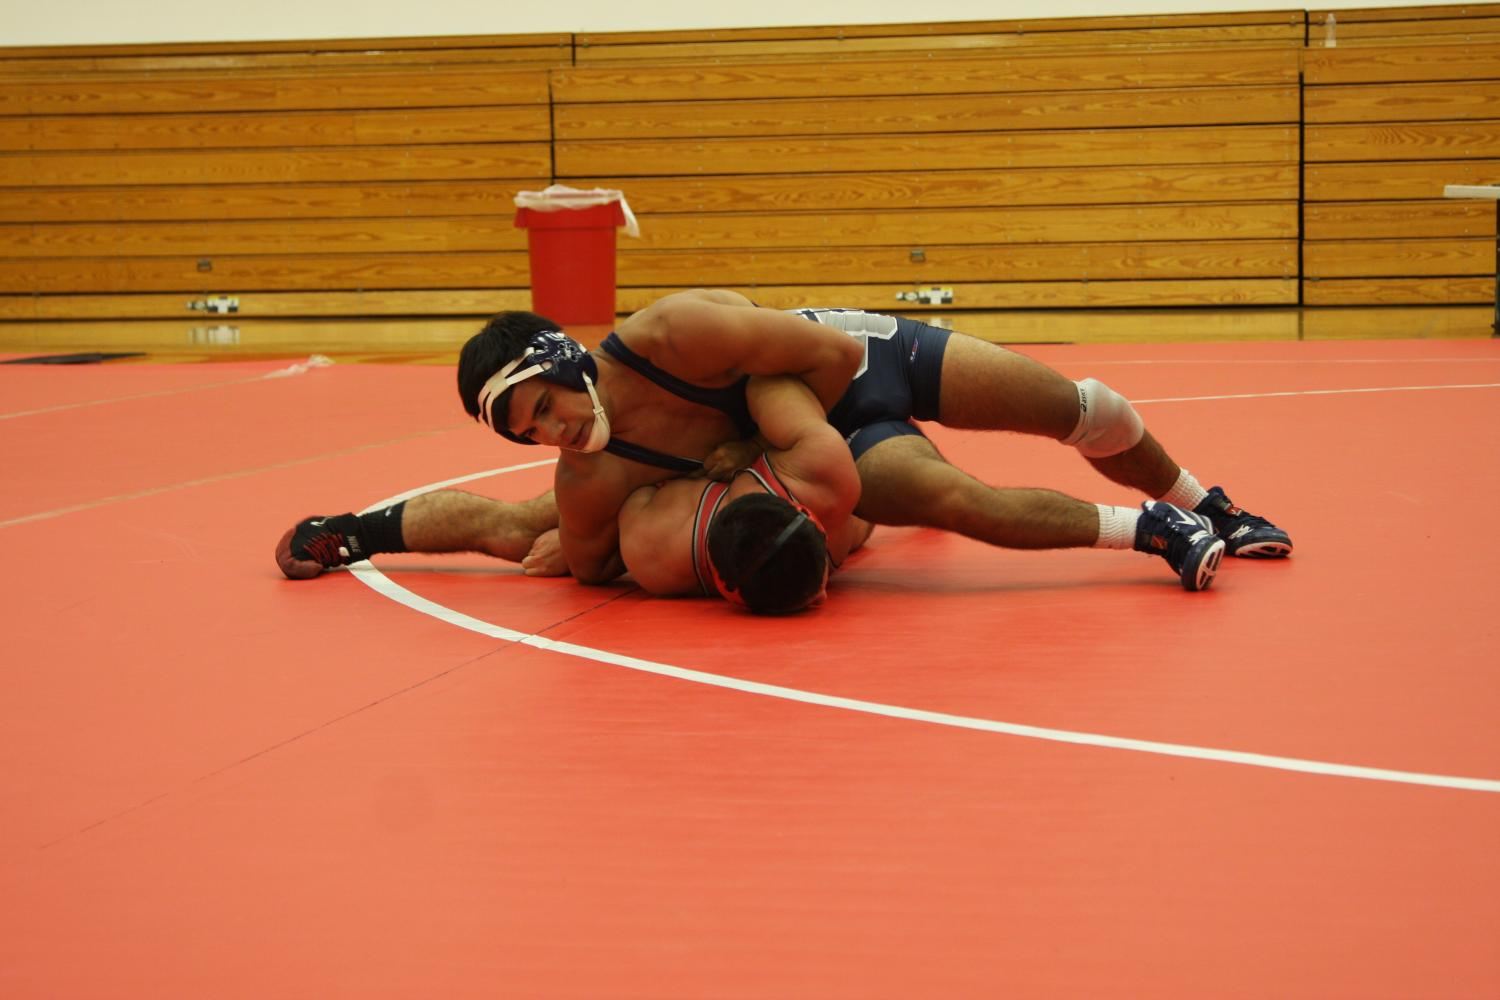 The+175-pound+sophomore+Blake+Vasquez+out-wrestling+his+opponent+from+Bakersfield.+Vasquez+won+this+match+due+to+a+forfeit.+Photo+credit%3A+David+Jenkins